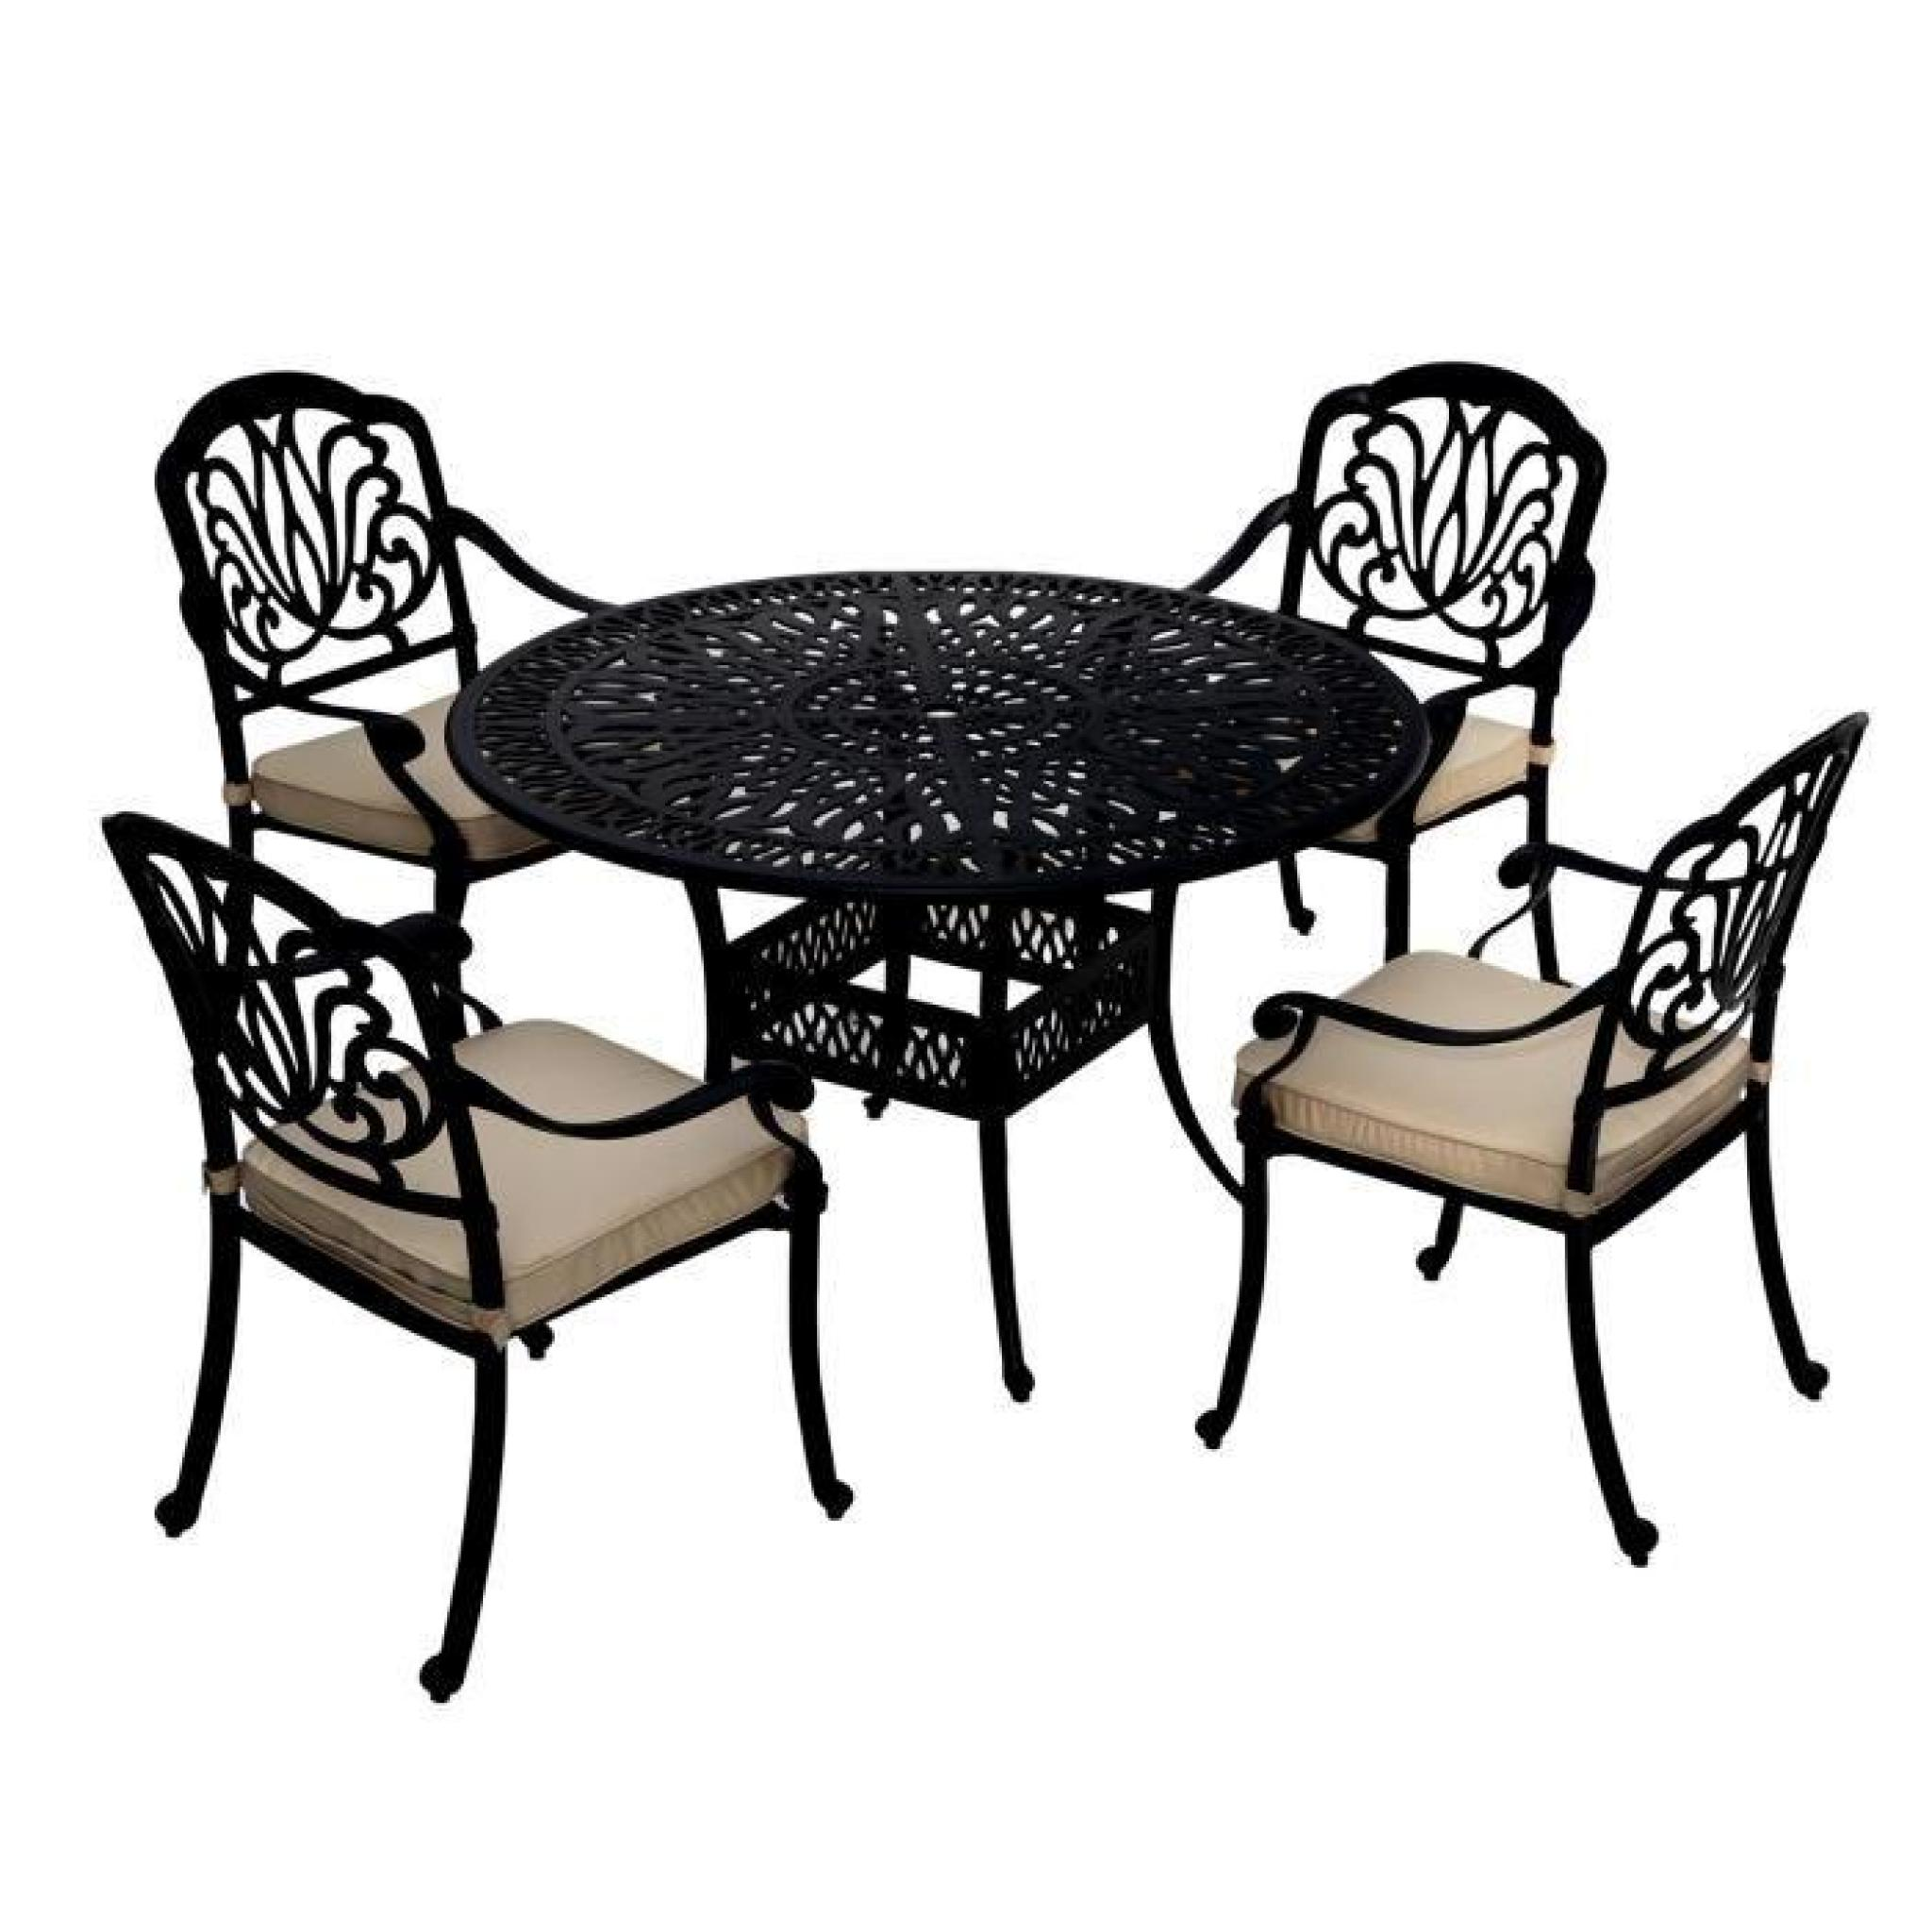 bentley garden salon de jardin de qualit aluminium moul pour 4 personnes achat vente. Black Bedroom Furniture Sets. Home Design Ideas